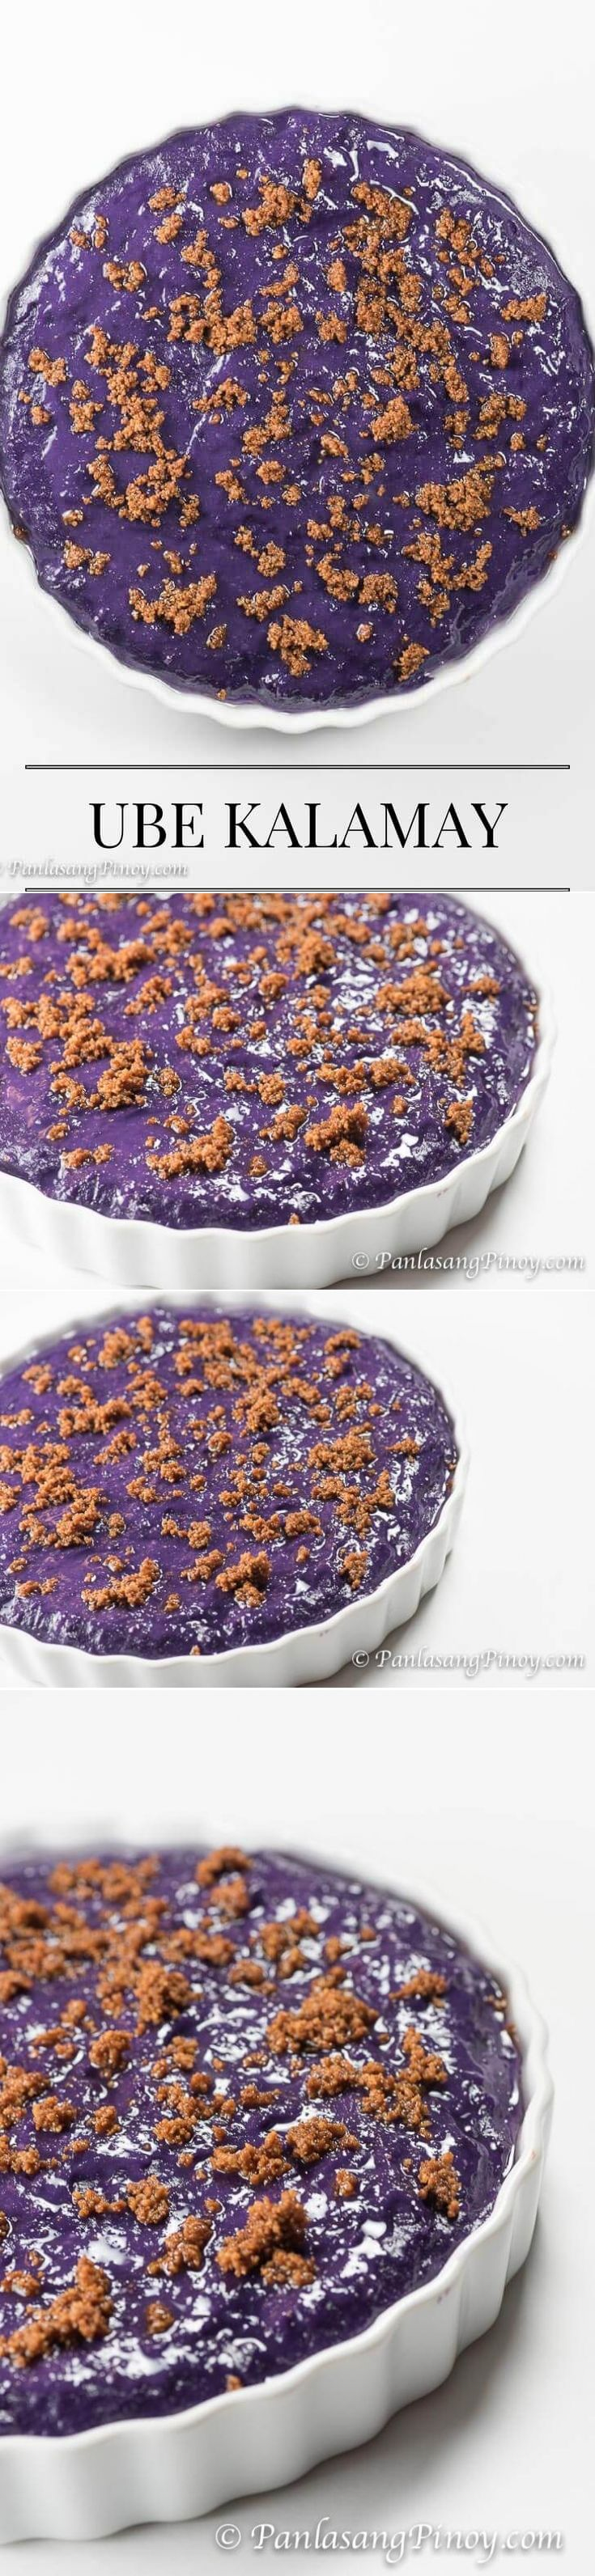 "Ube kalamay is a type of Filipino ""kakanin"" (also referred to as rice cake). It made from grated purple yam, which is known as ""ube"" in the Philippines. The other ingredients as far as this recipe is concerned are glutinous rice flour, white sugar, and ube flavoring.   This has a sweet taste and it is gooey (soft and sticky). I enjoy eating ube kalamay as meryenda in the middle of the afternoon. It can also be eaten during breakfast with a cup of coffee or hot chocolate."